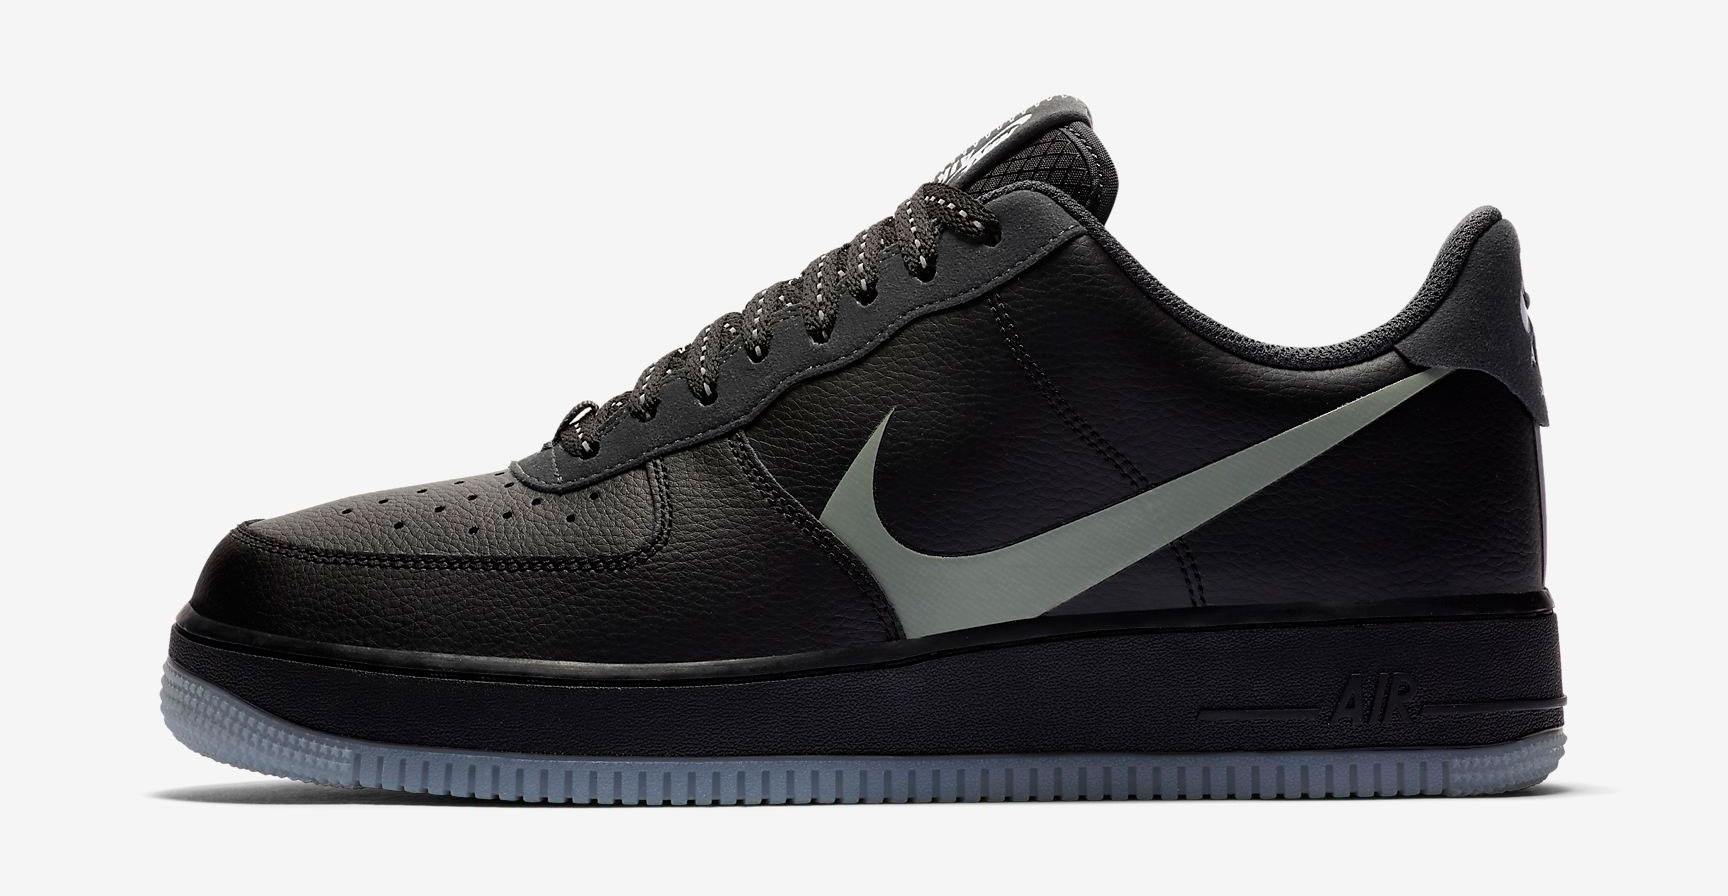 nike-air-force-1-black-anthracite-release-date